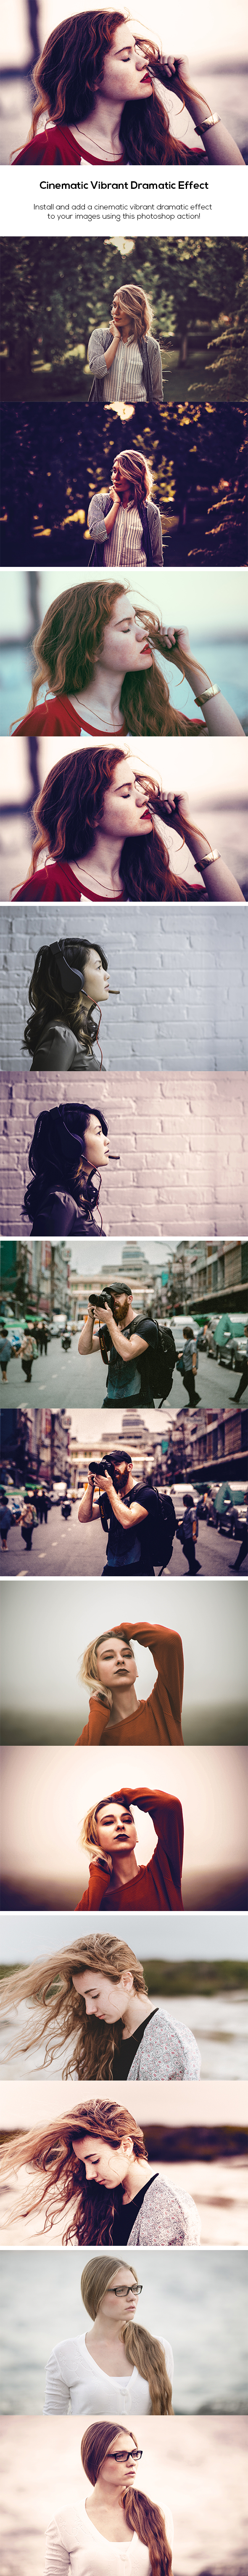 Cinematic Vibrant Dramatic Effect - Photo Effects Actions